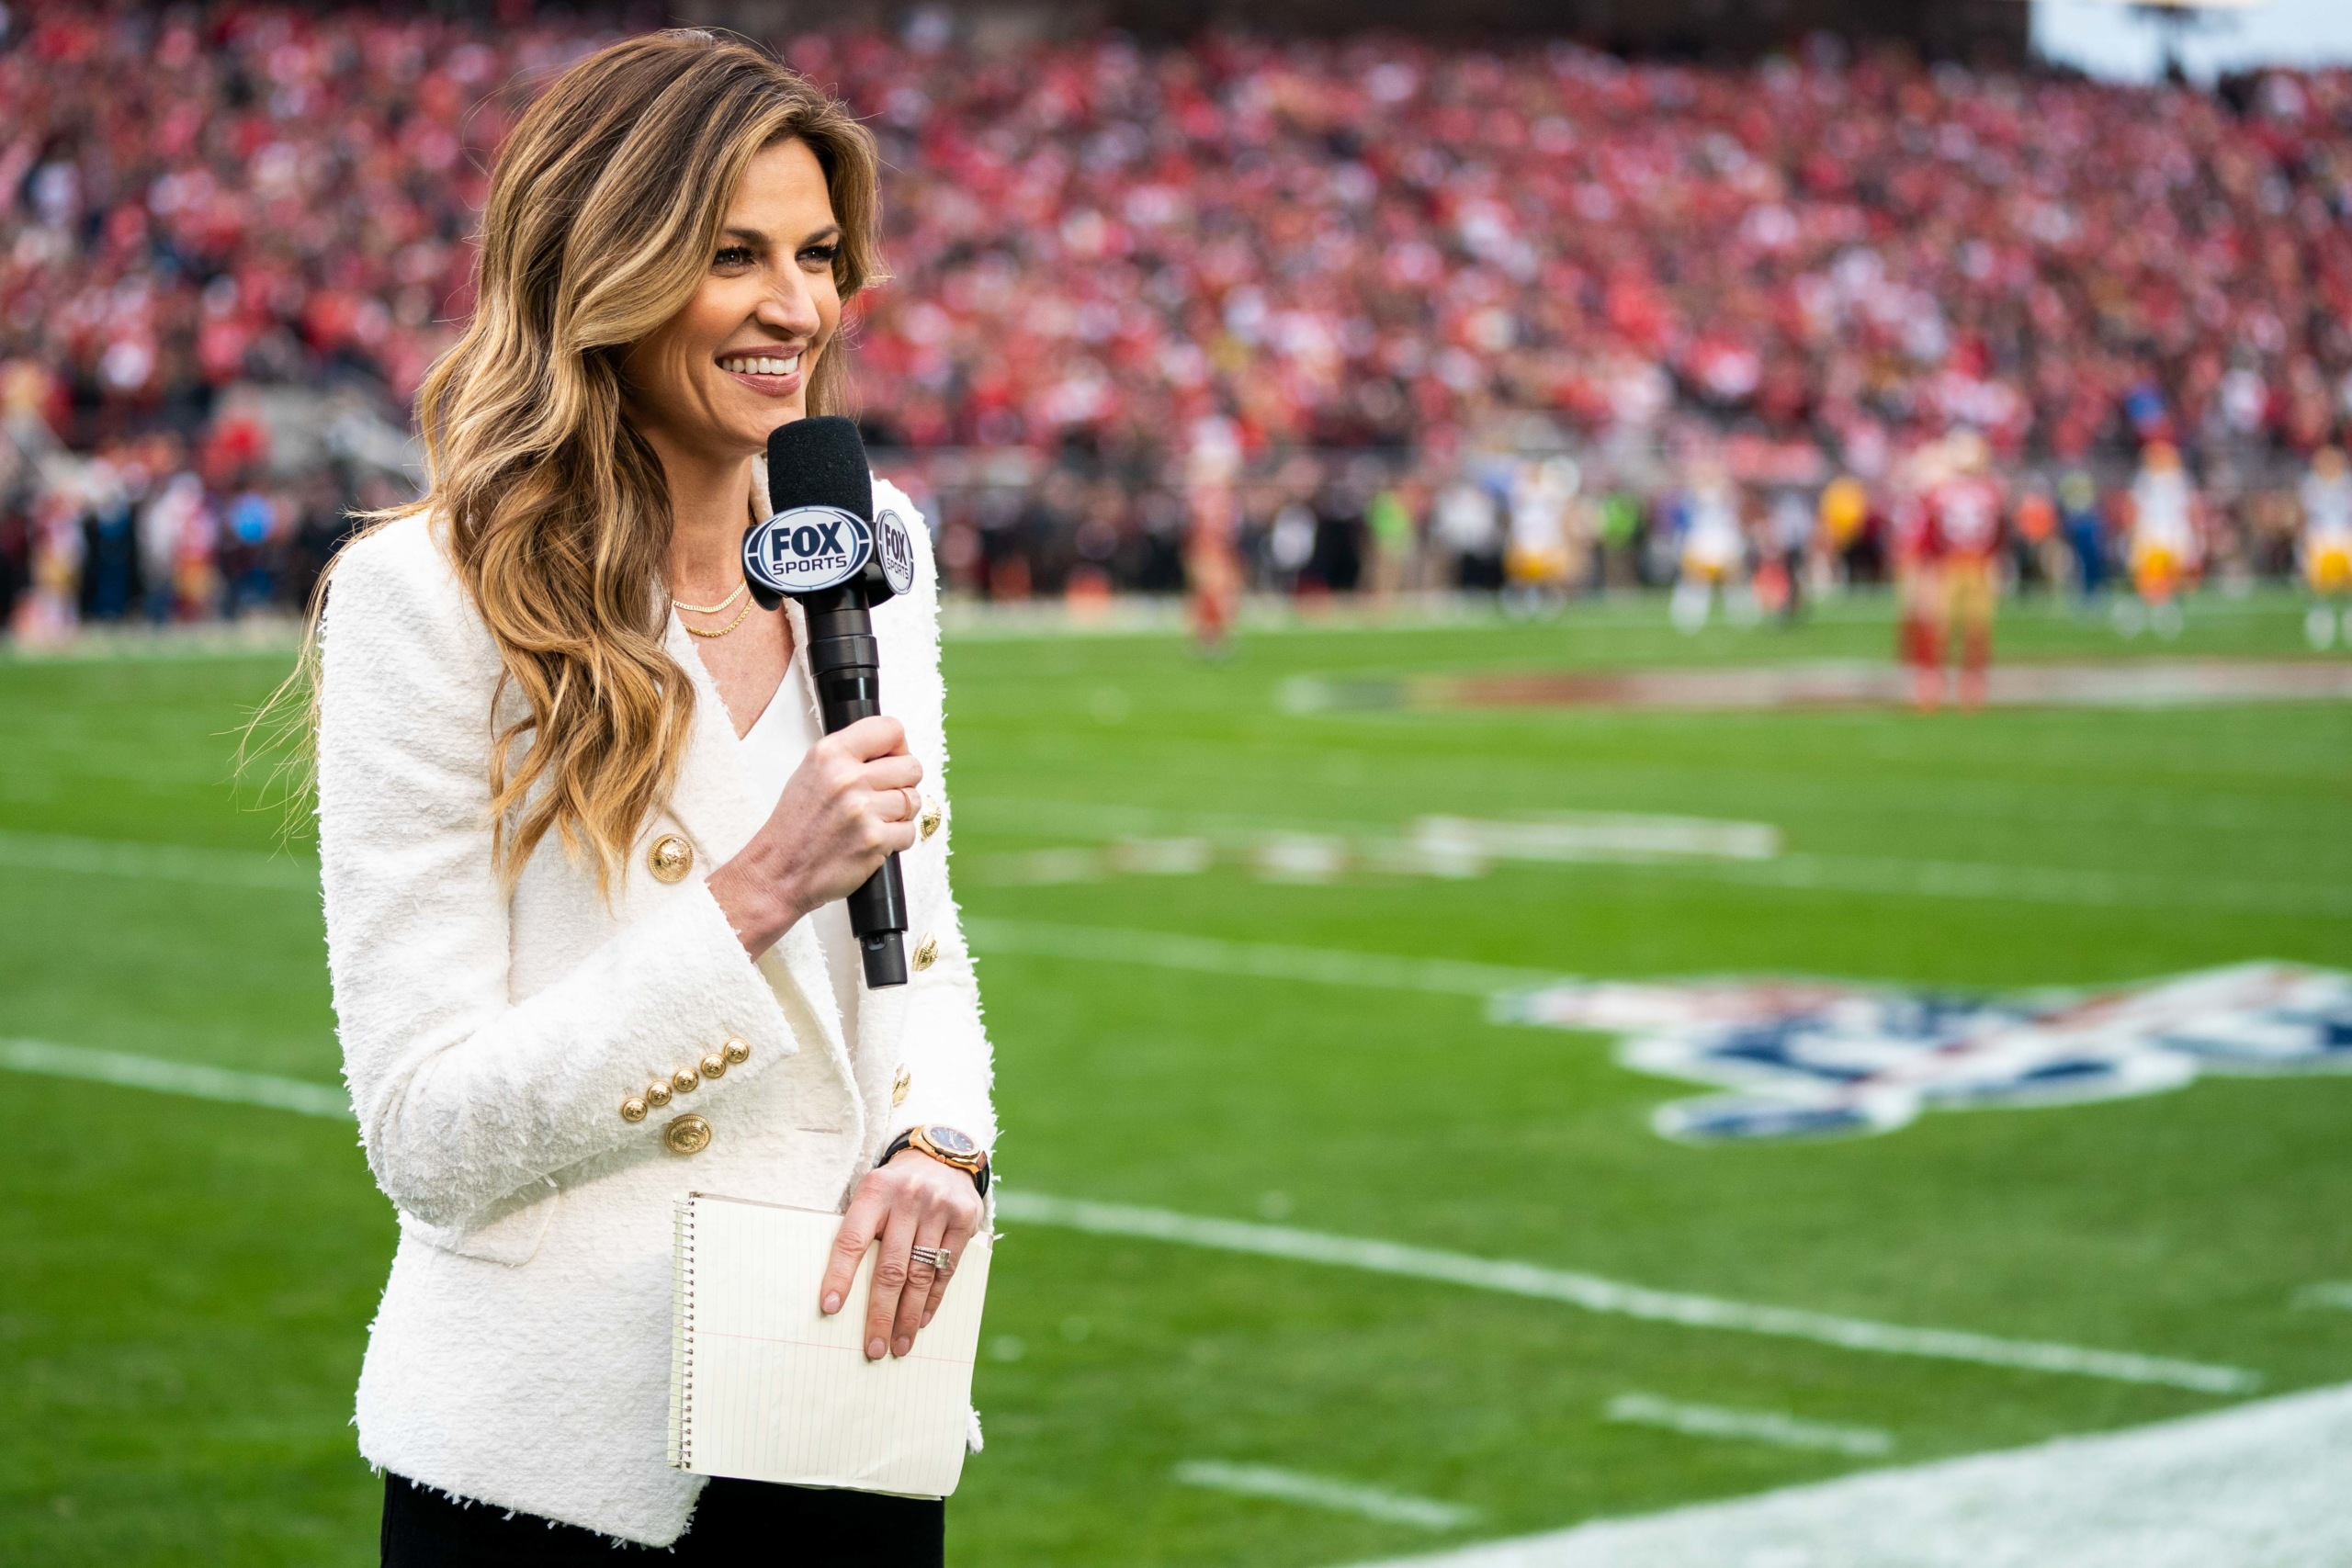 A sideline reporter films a hit at an NFL game.